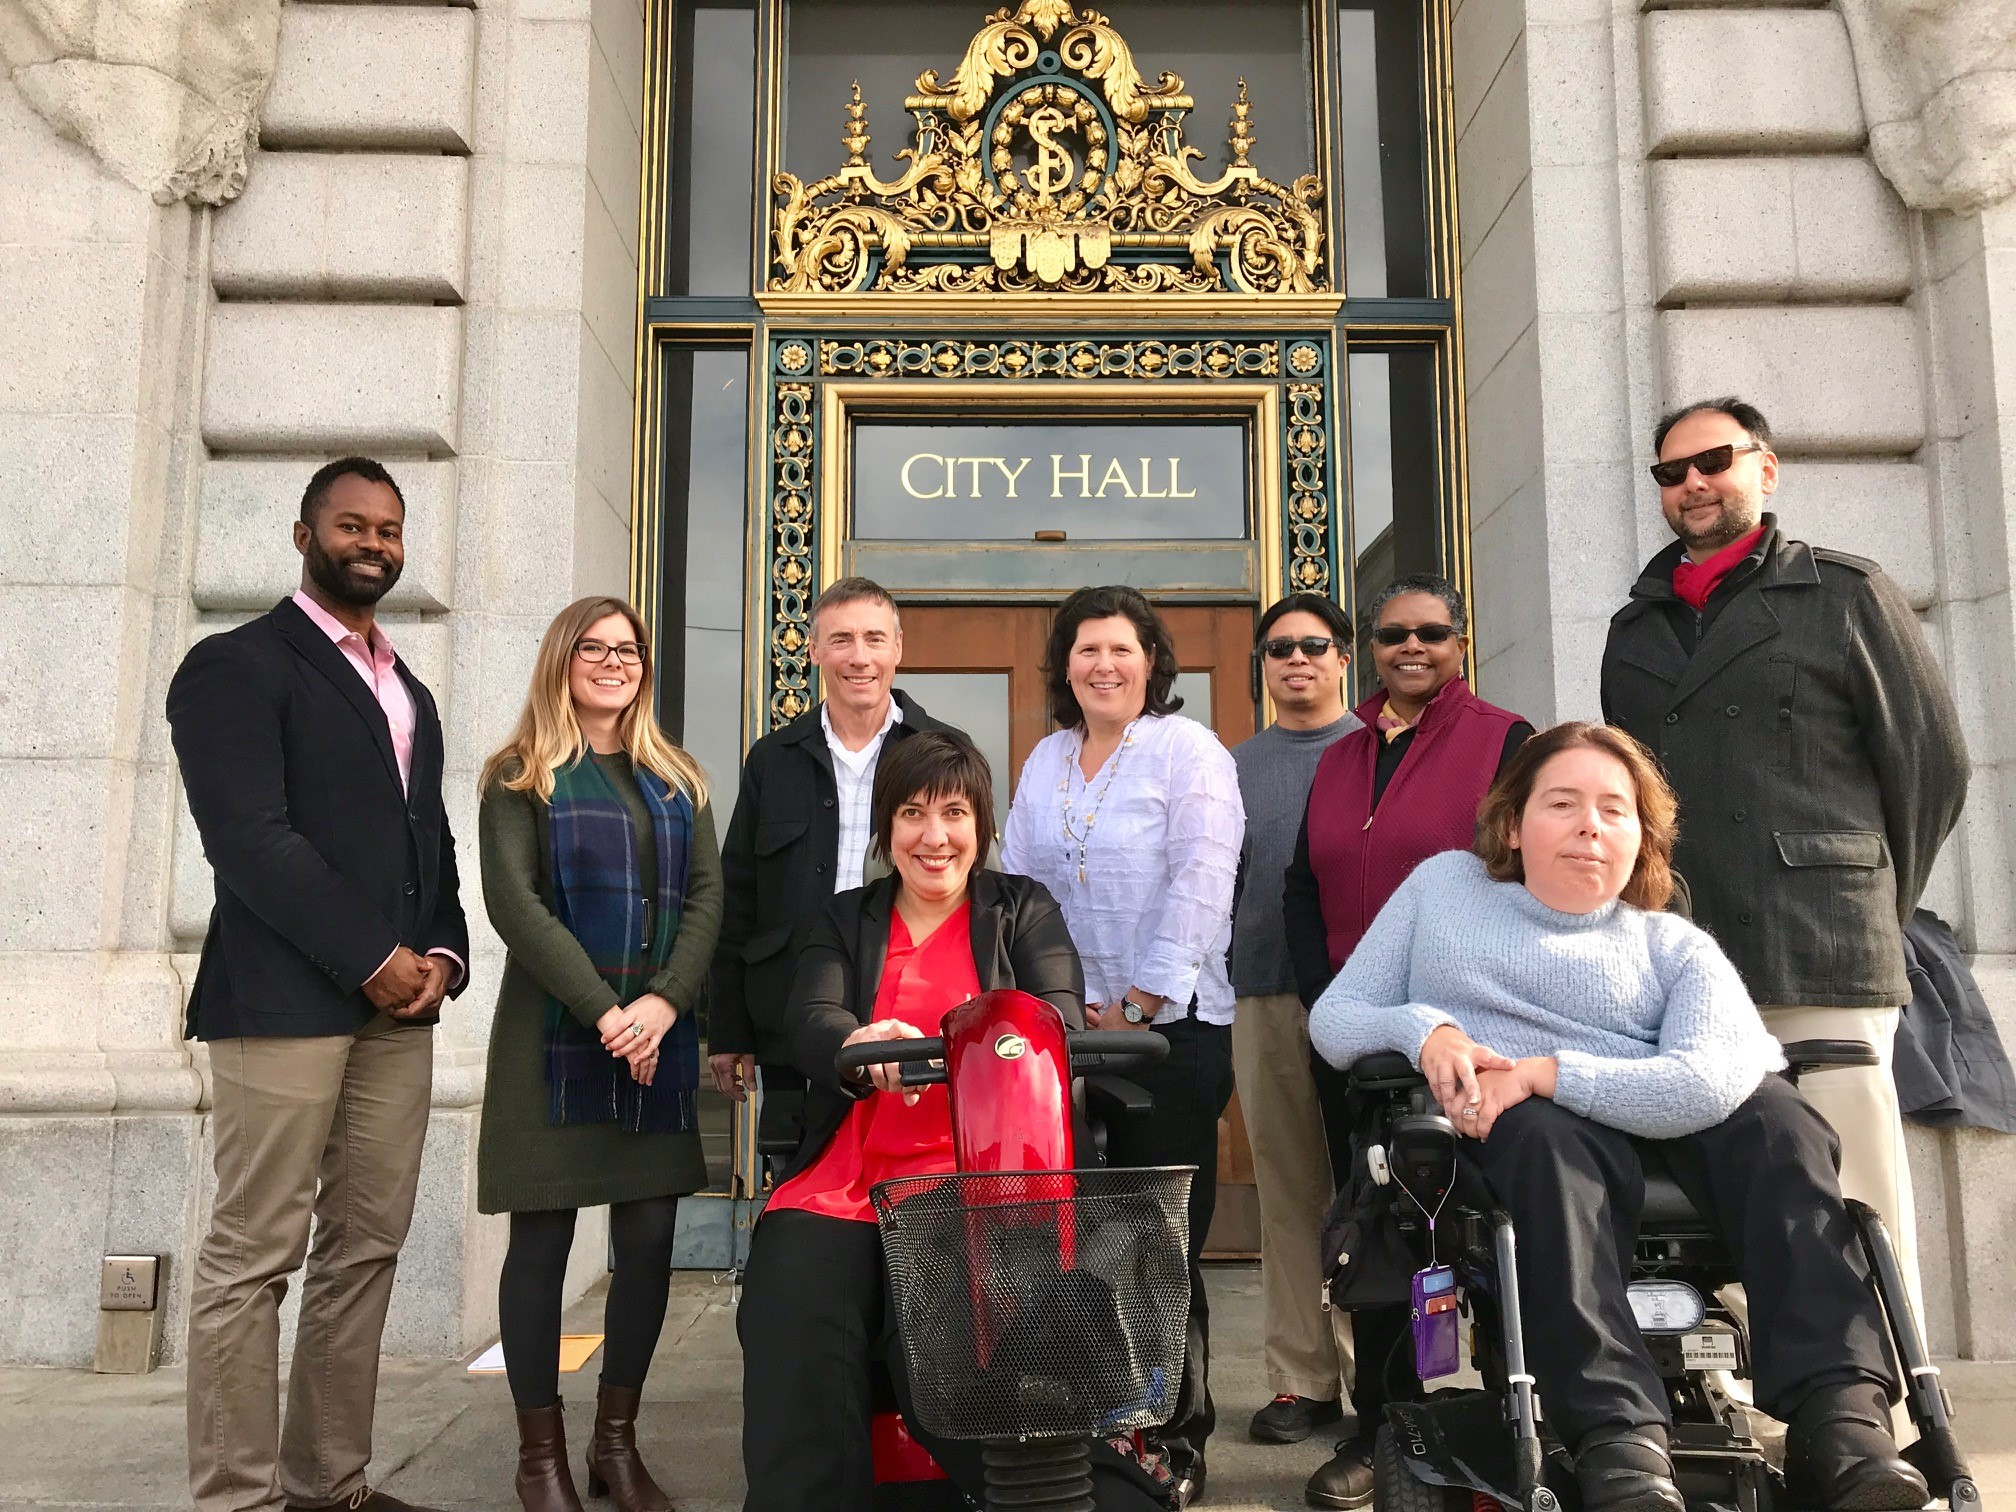 Mayor's Office on Disability Staff Photo